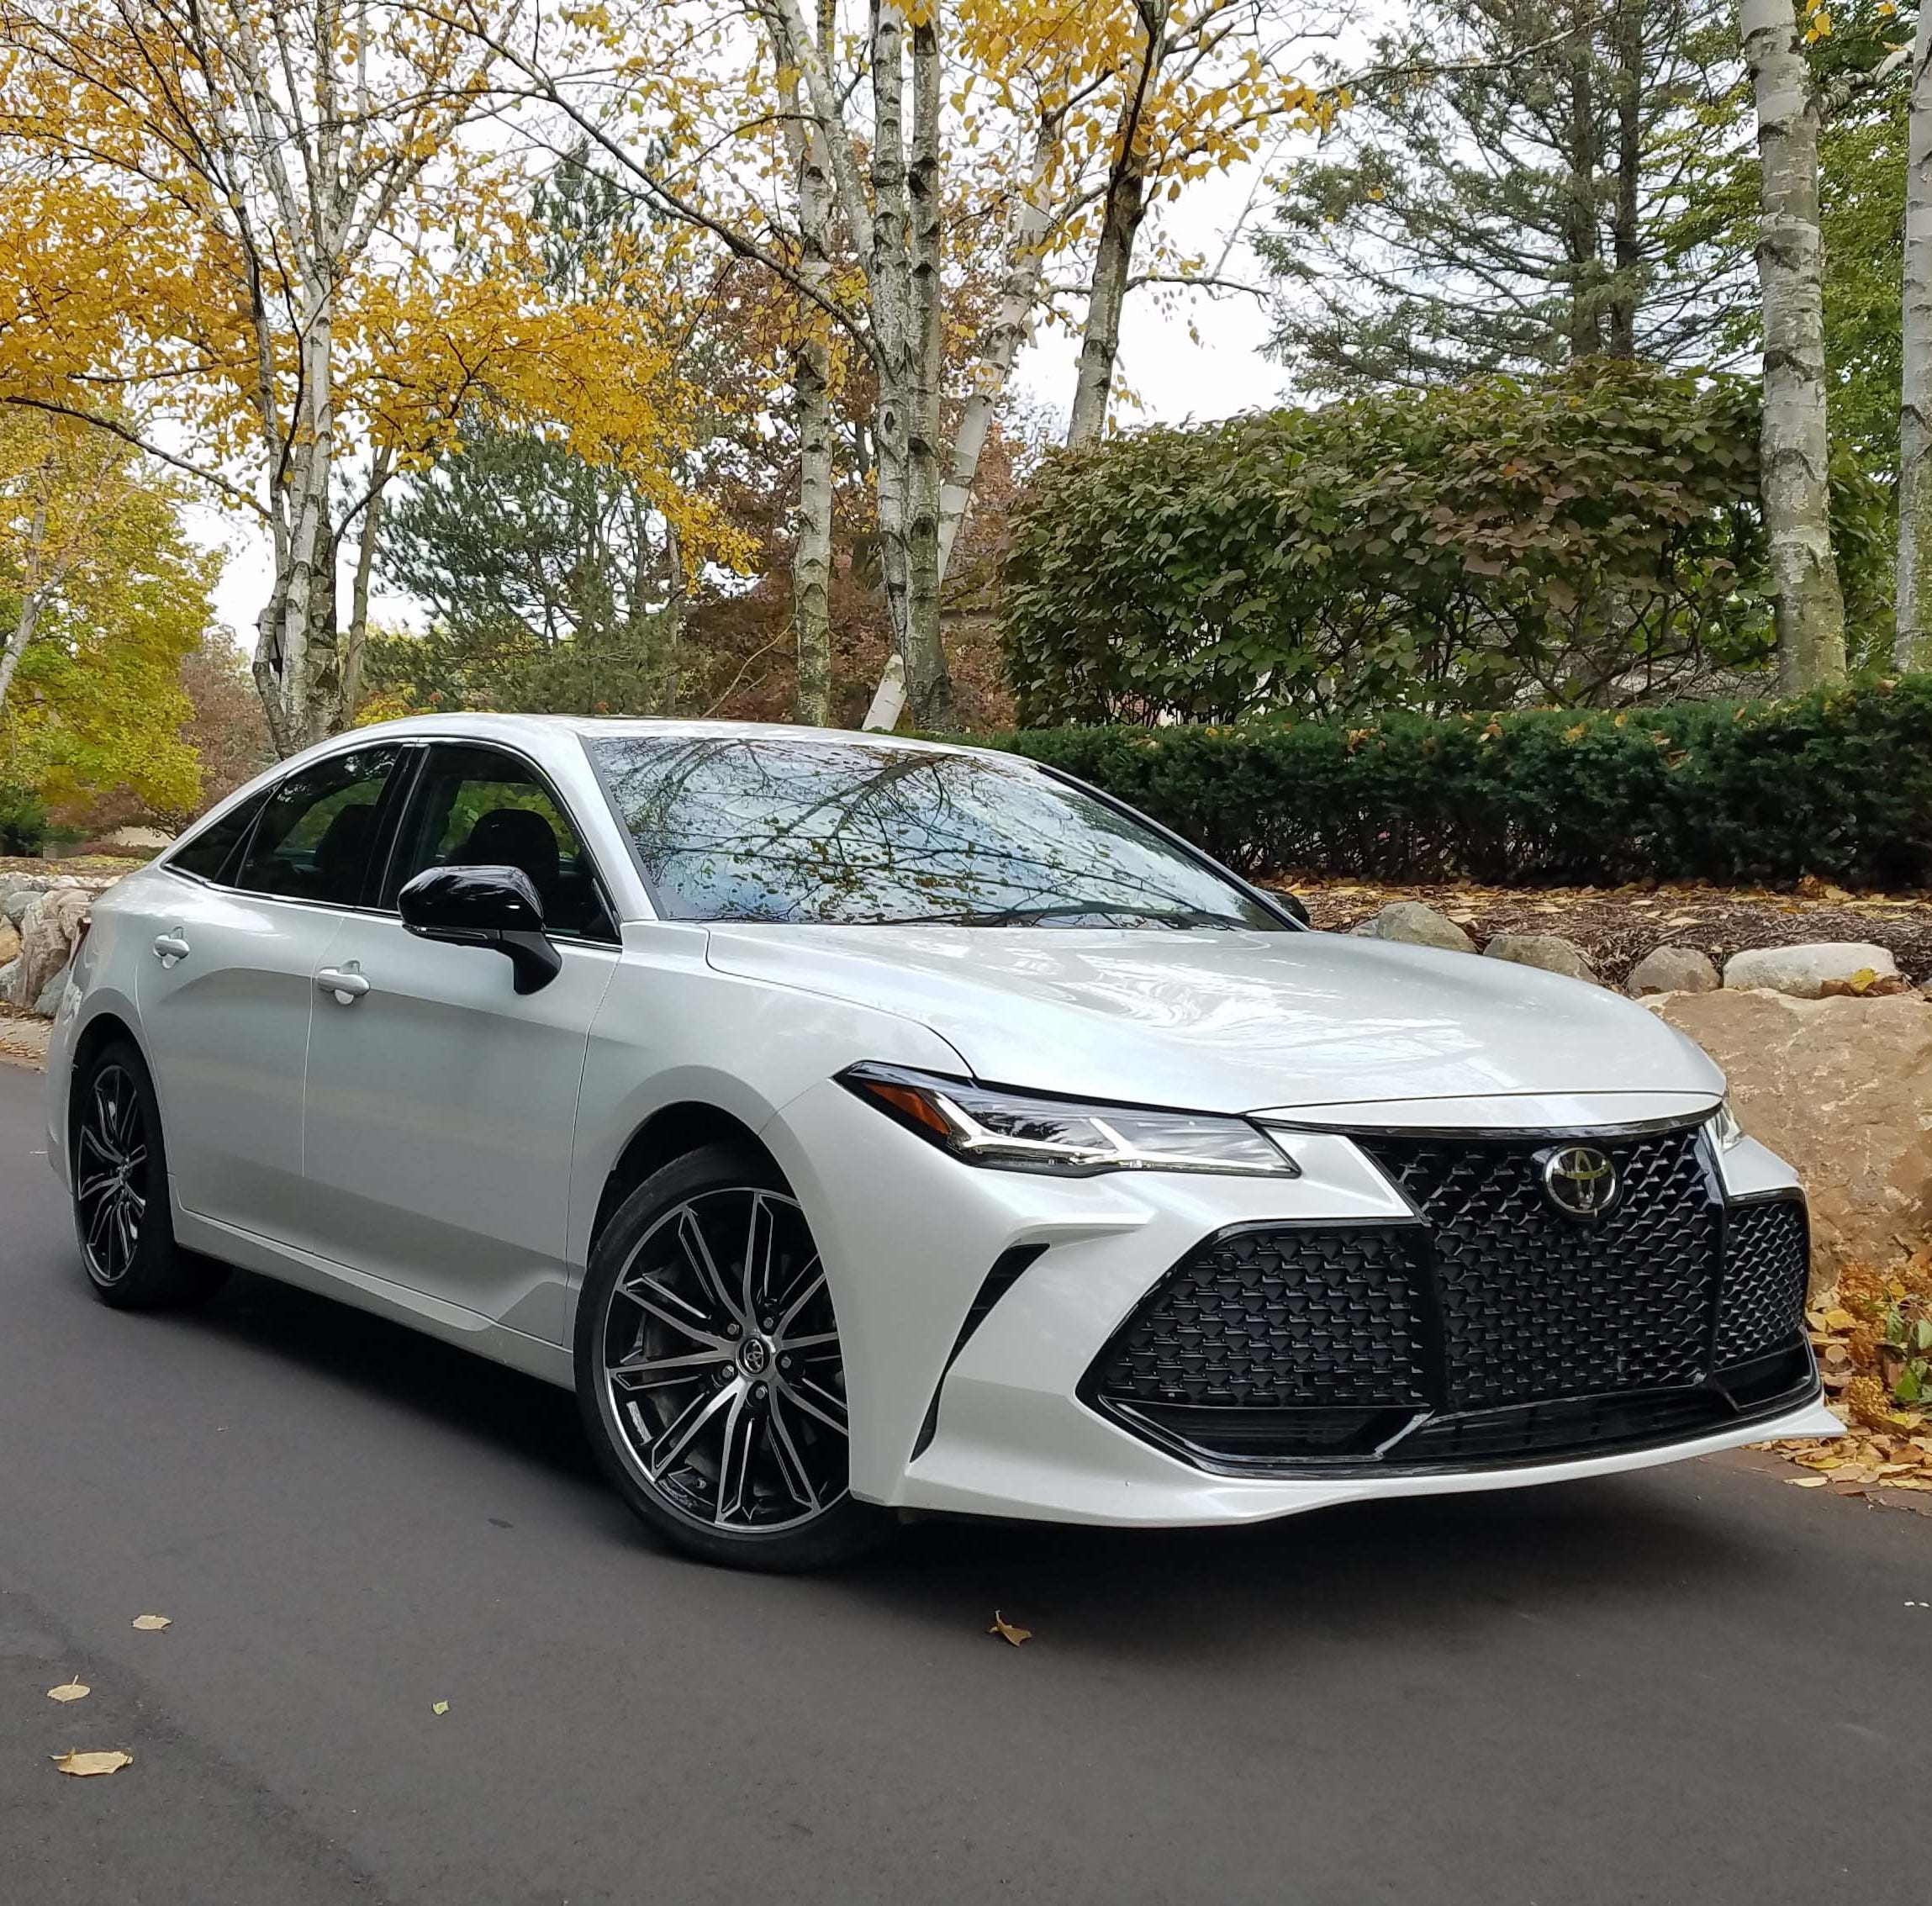 Payne: Toyota's new Avalon is a Lexus-beater